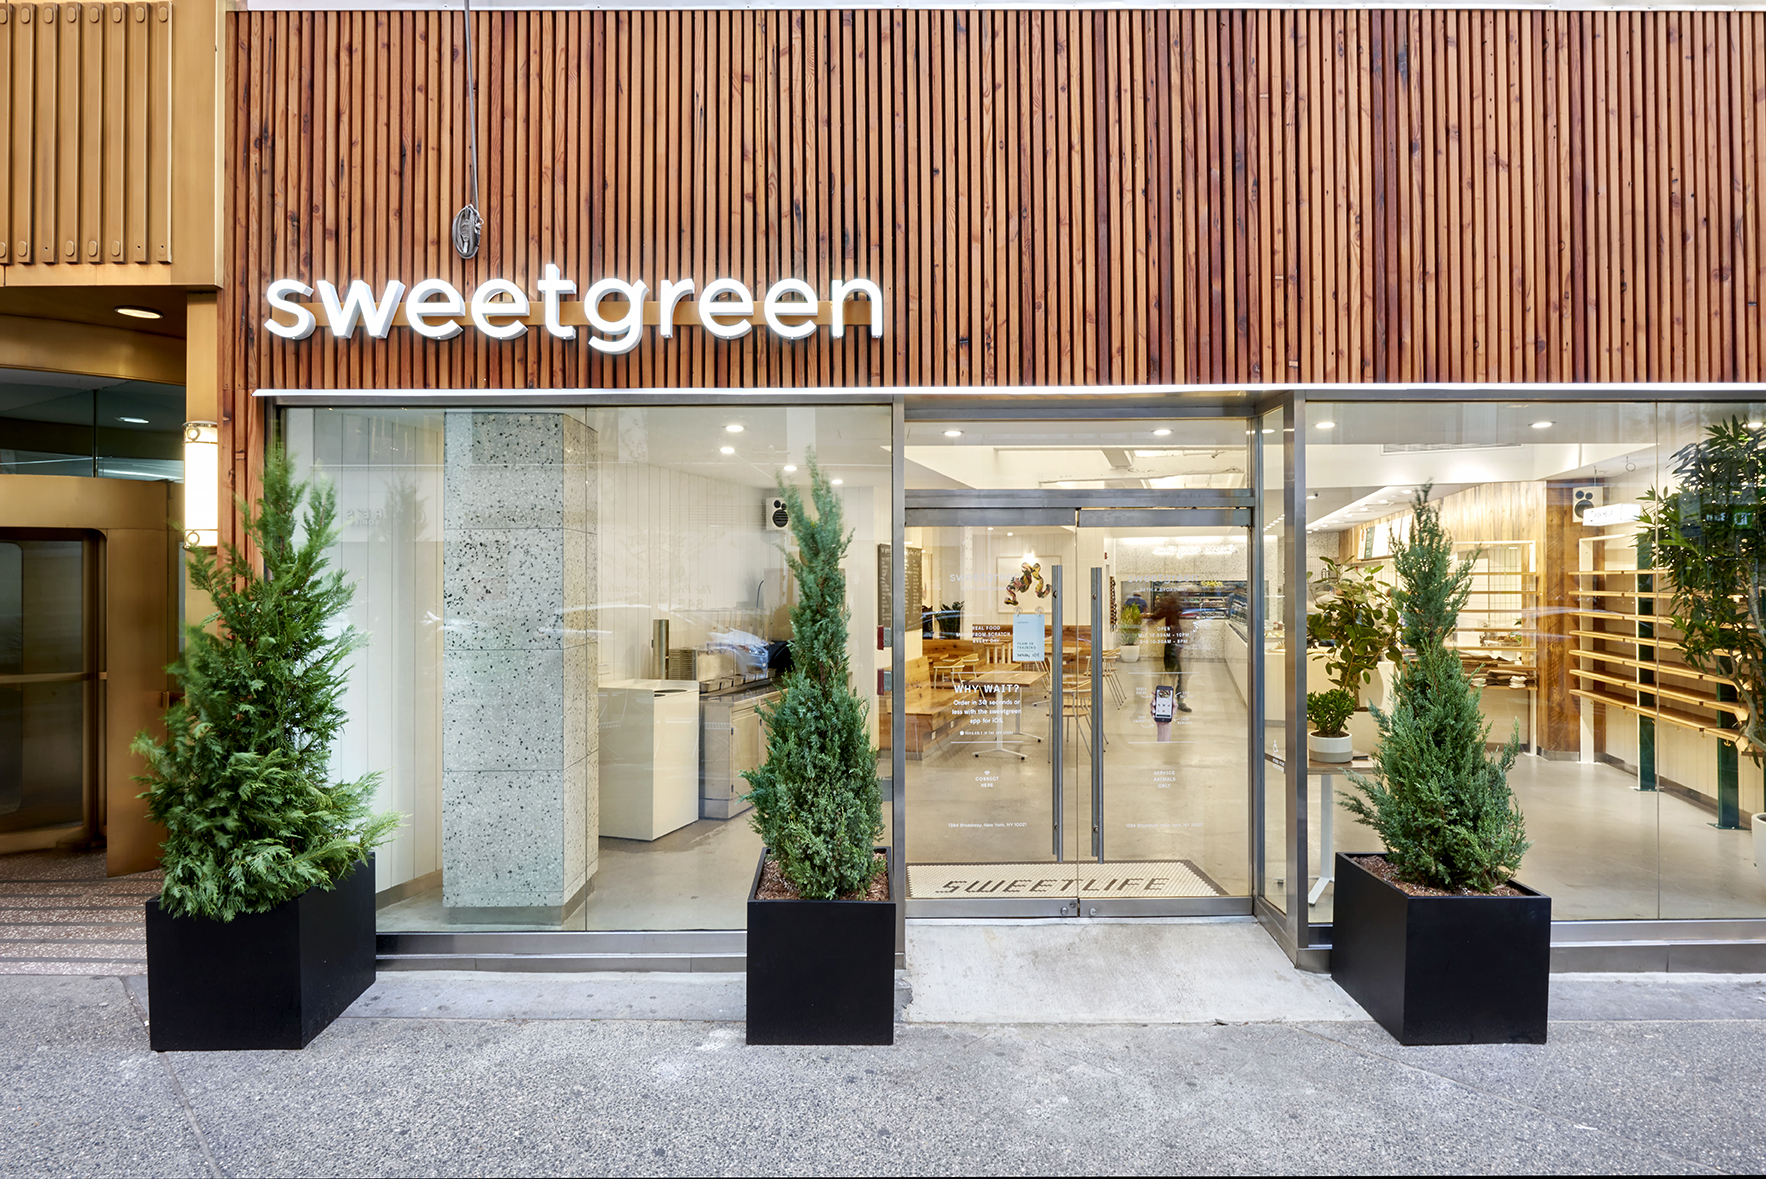 Restaurant Chain Sweetgreen Raises $200M USD To Invest In Blockchain